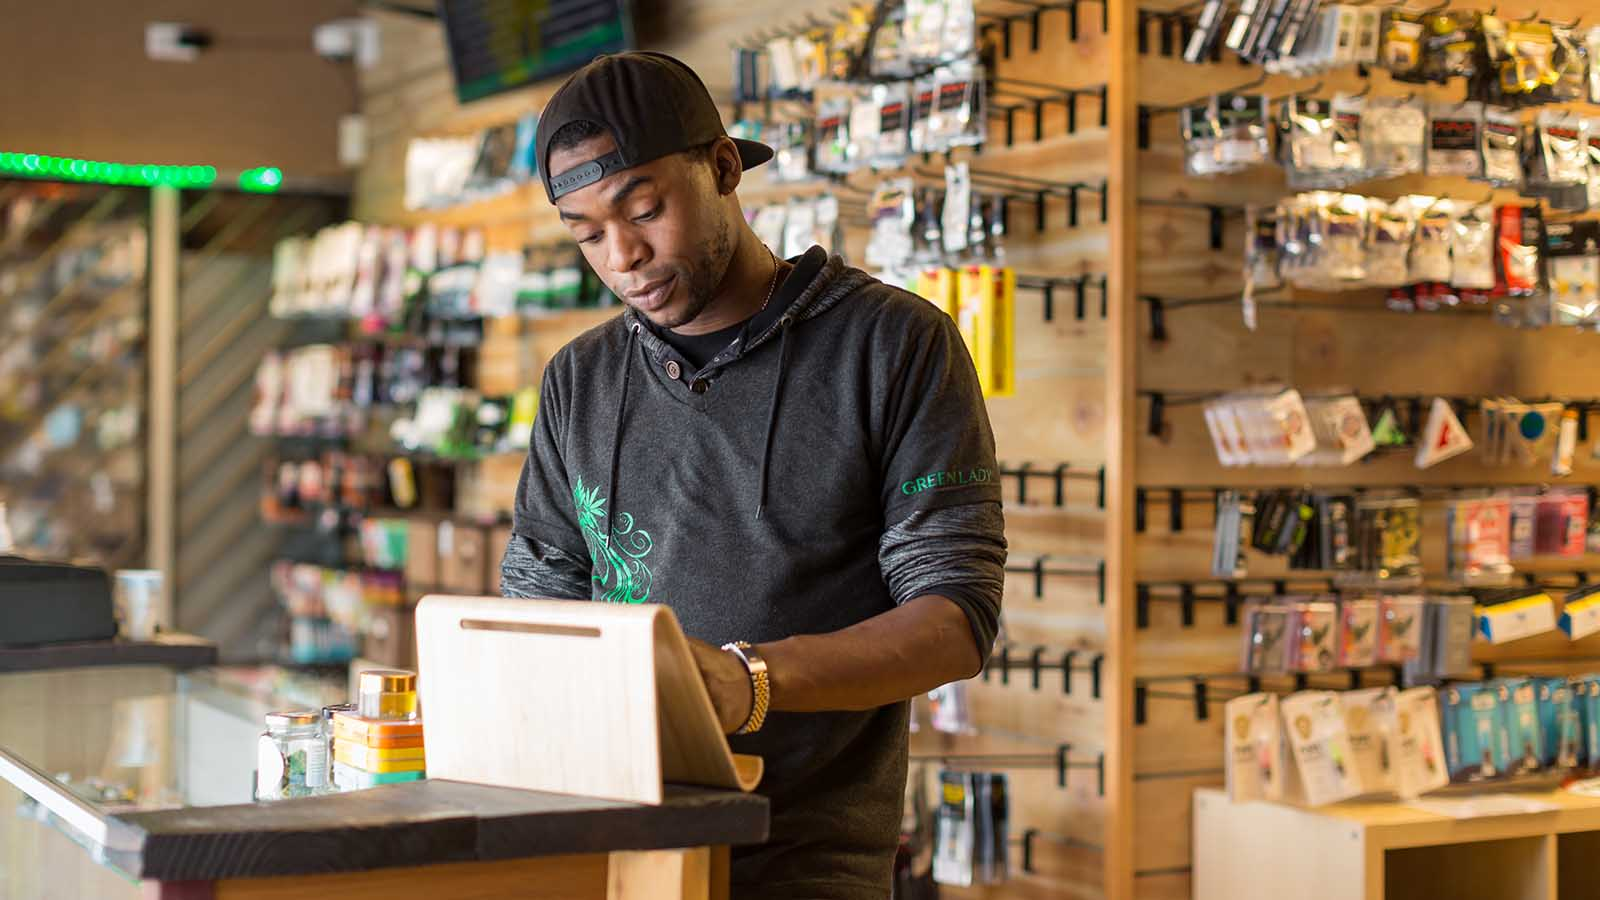 Dispensary Manager Job Description: 5 Key Responsibilities